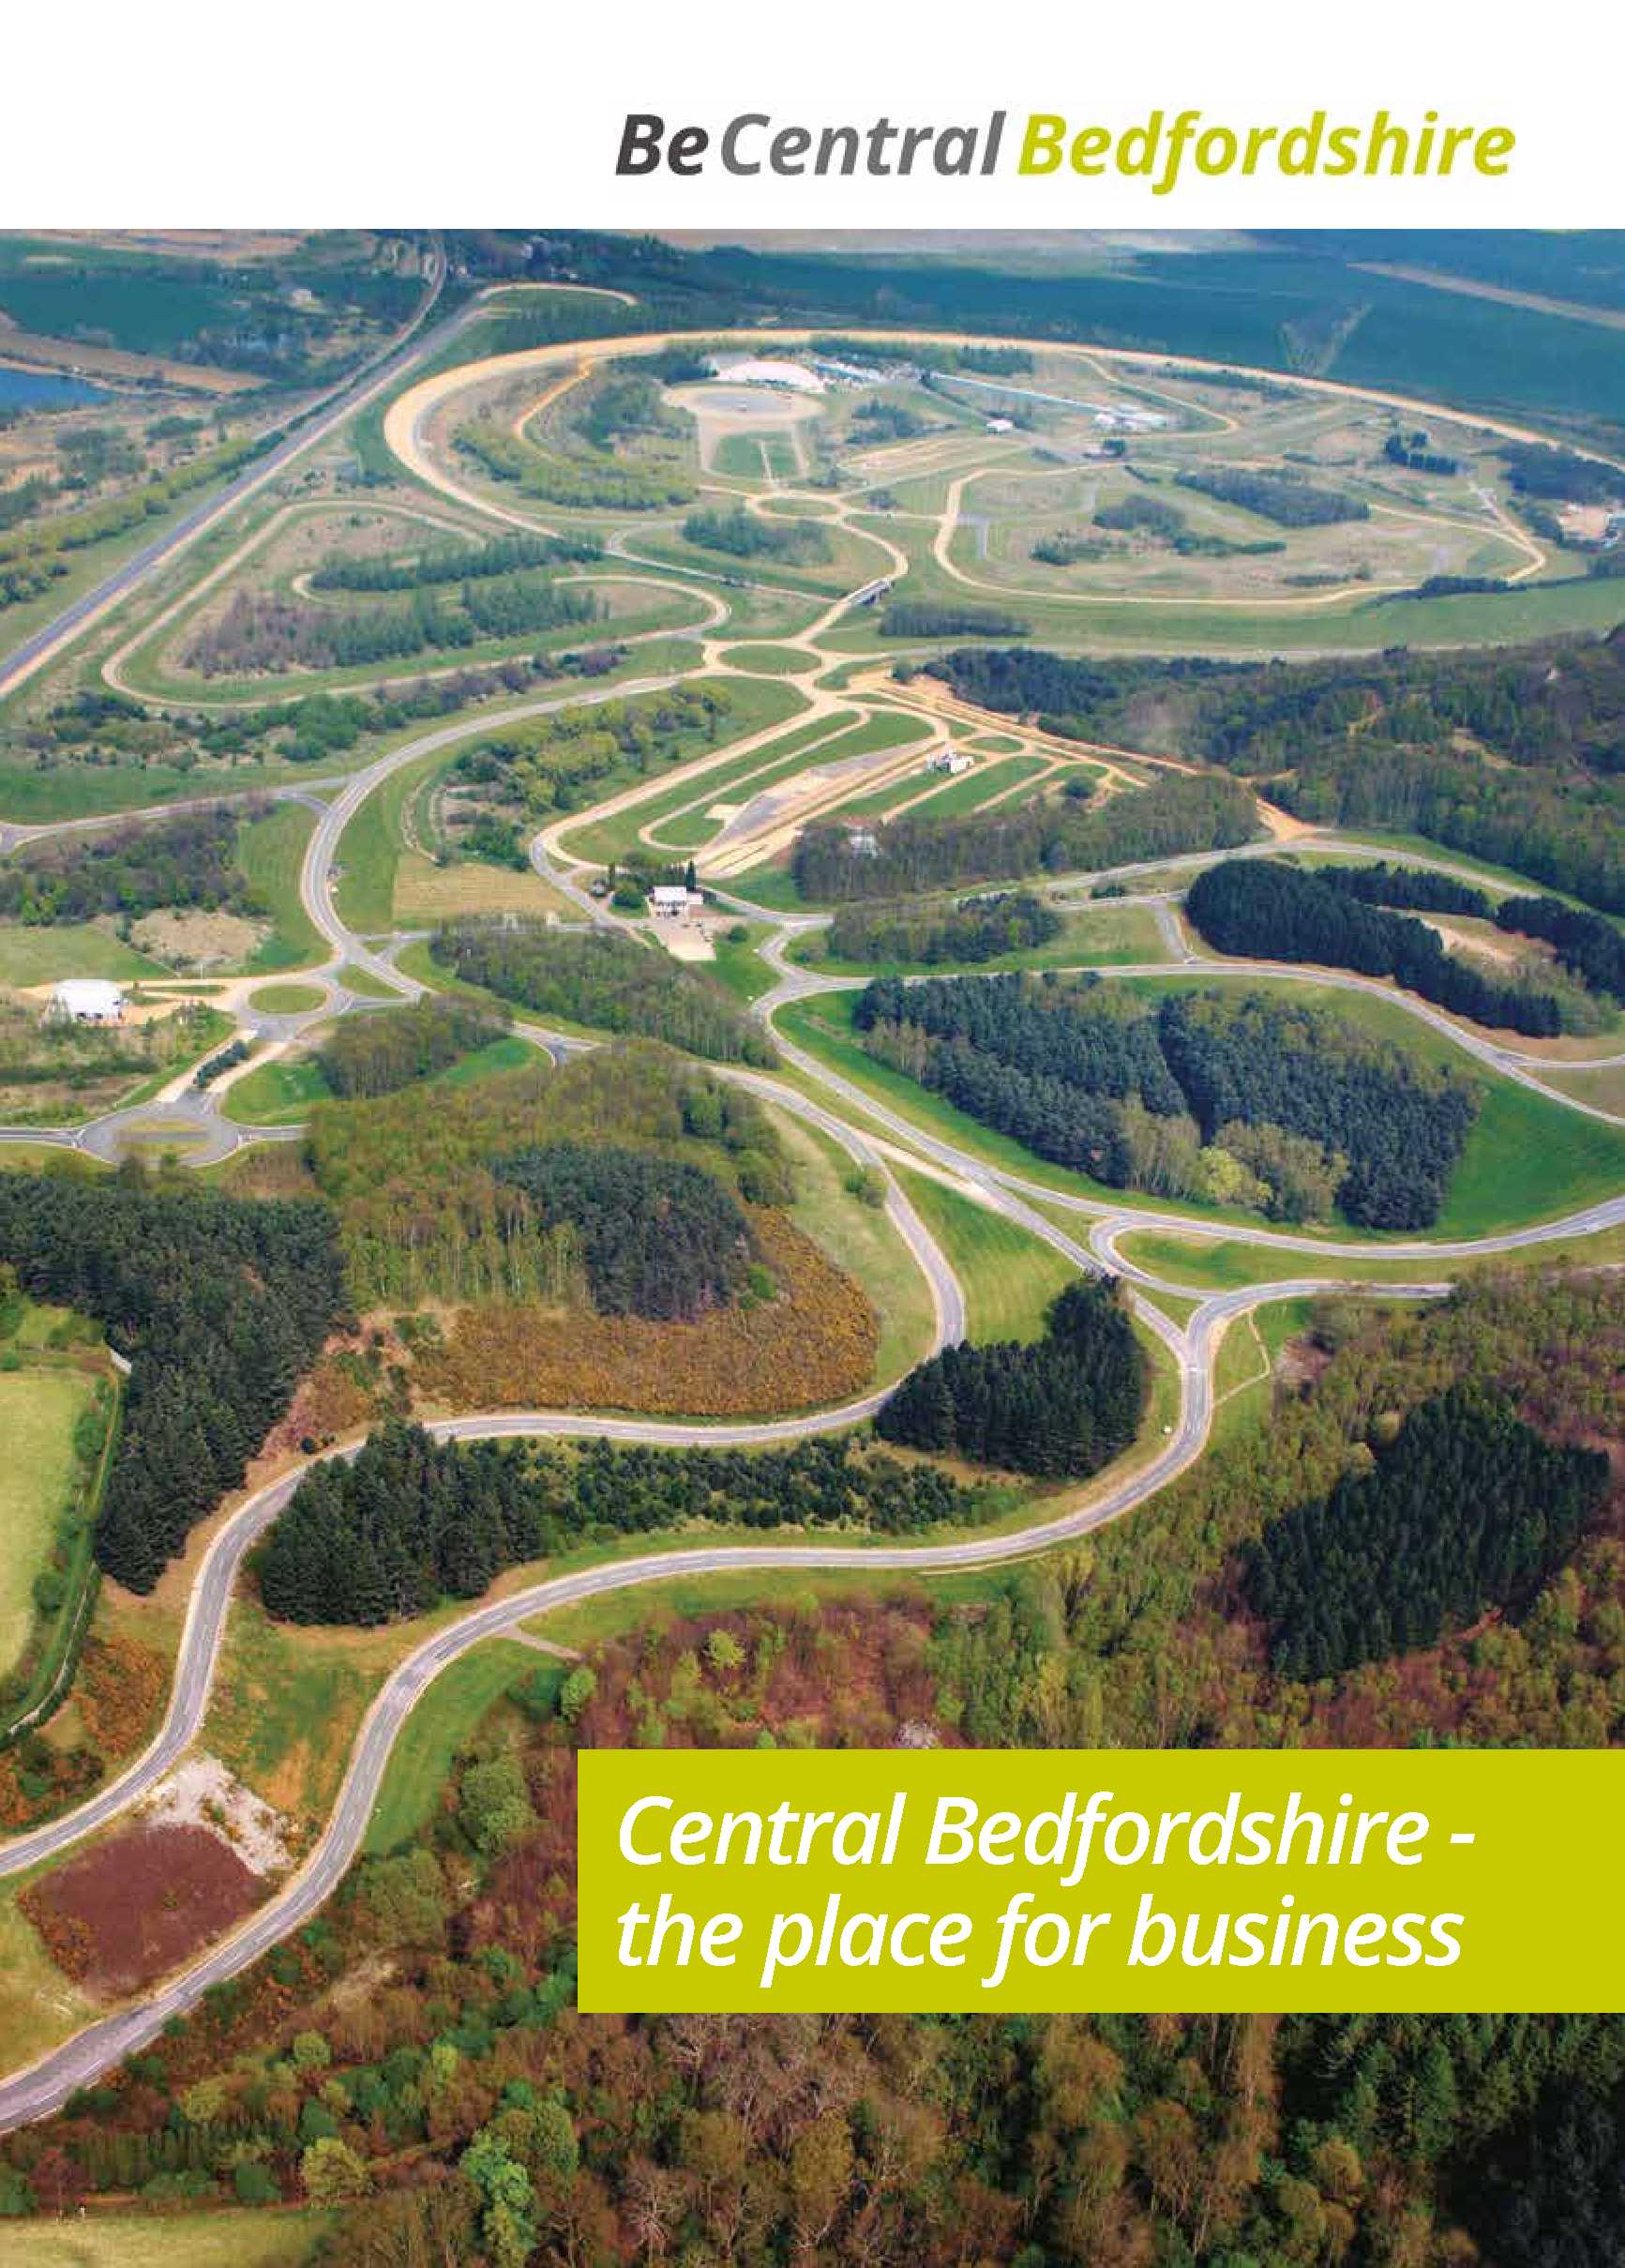 Central Bedfordshire - the place for business